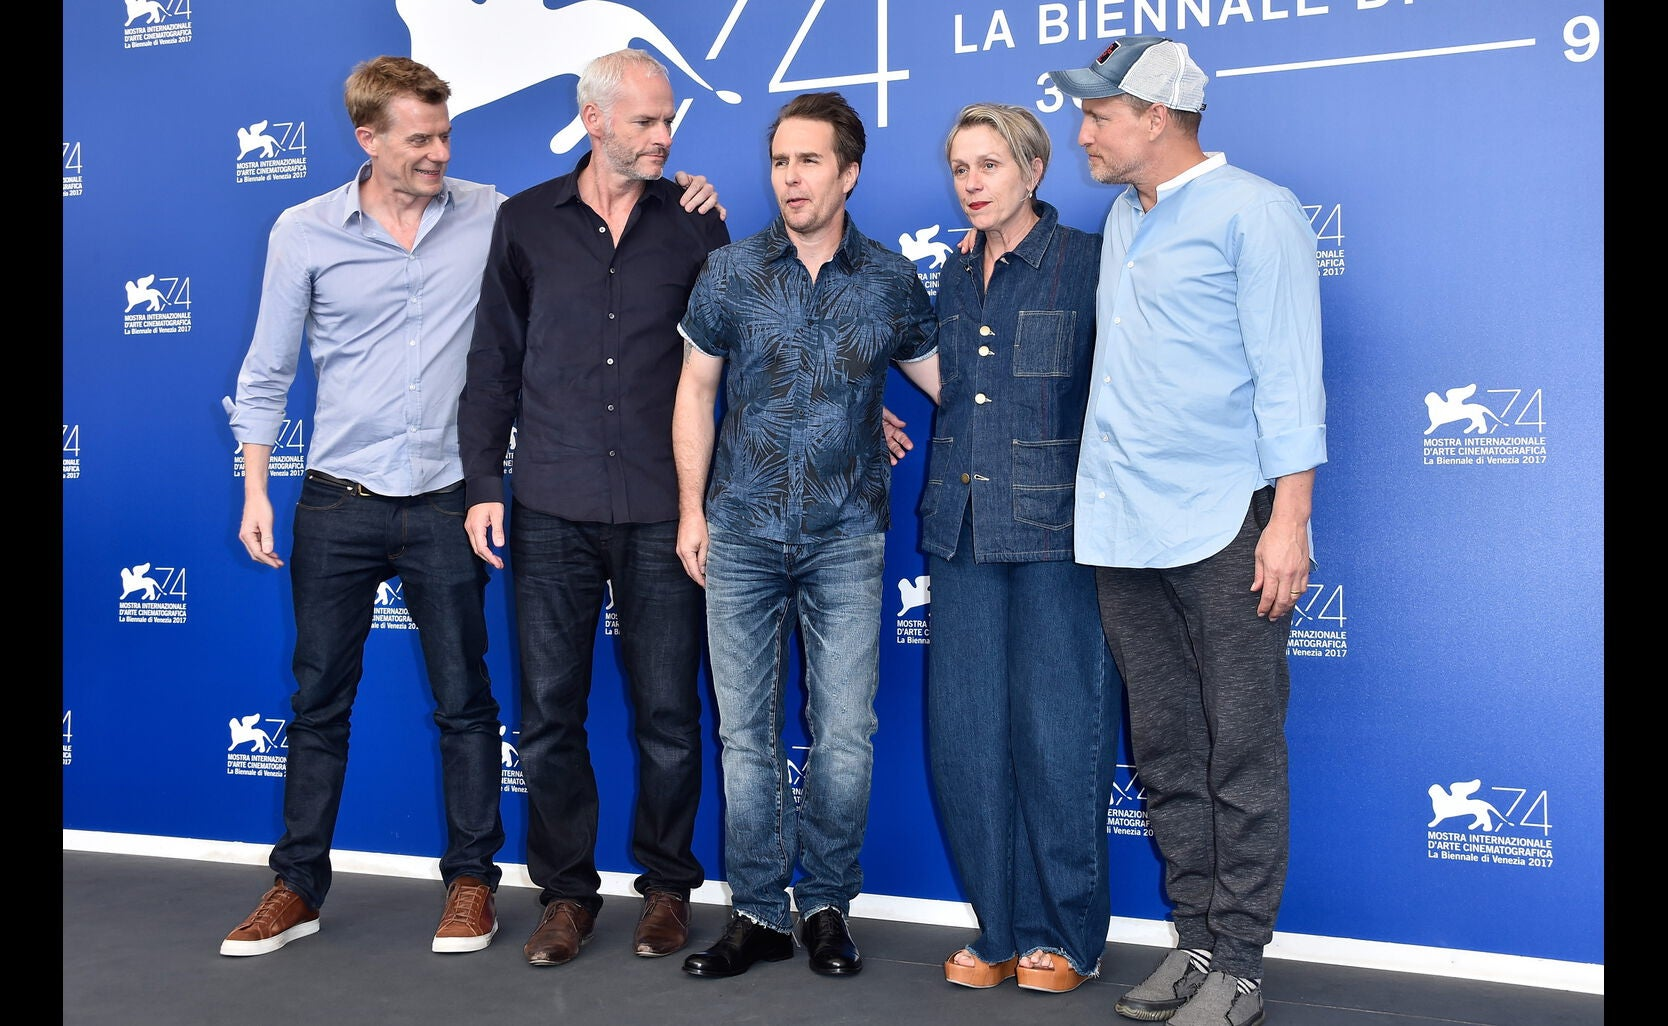 (L-R) Graham Broadbent, Martin McDonagh, Sam Rockwell, Frances McDormand and Woody Harrelson